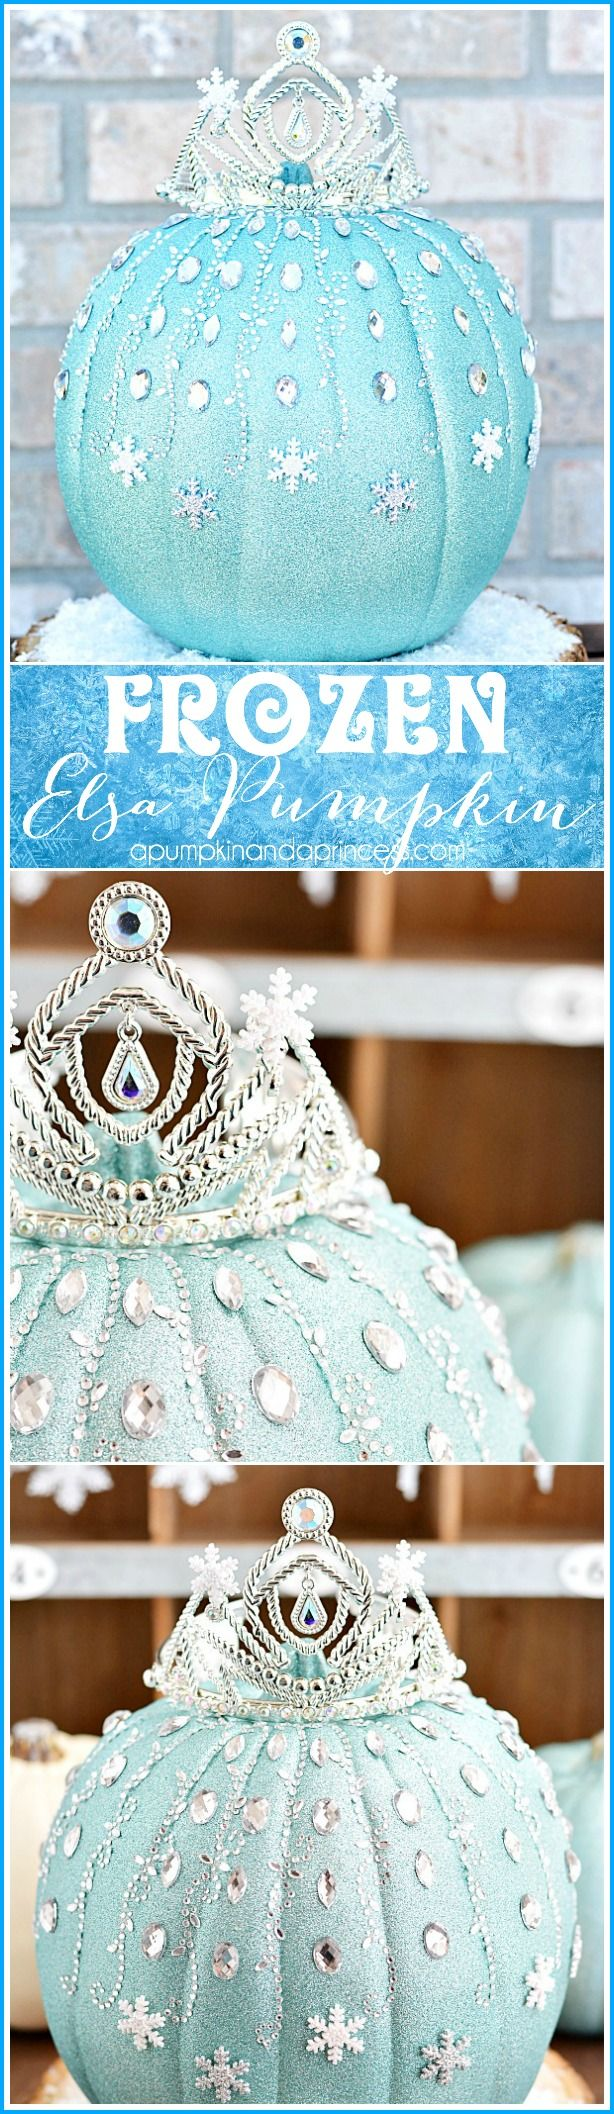 DIY Frozen Elsa Pumpkin from #MichaelsMakers @crystalowens: